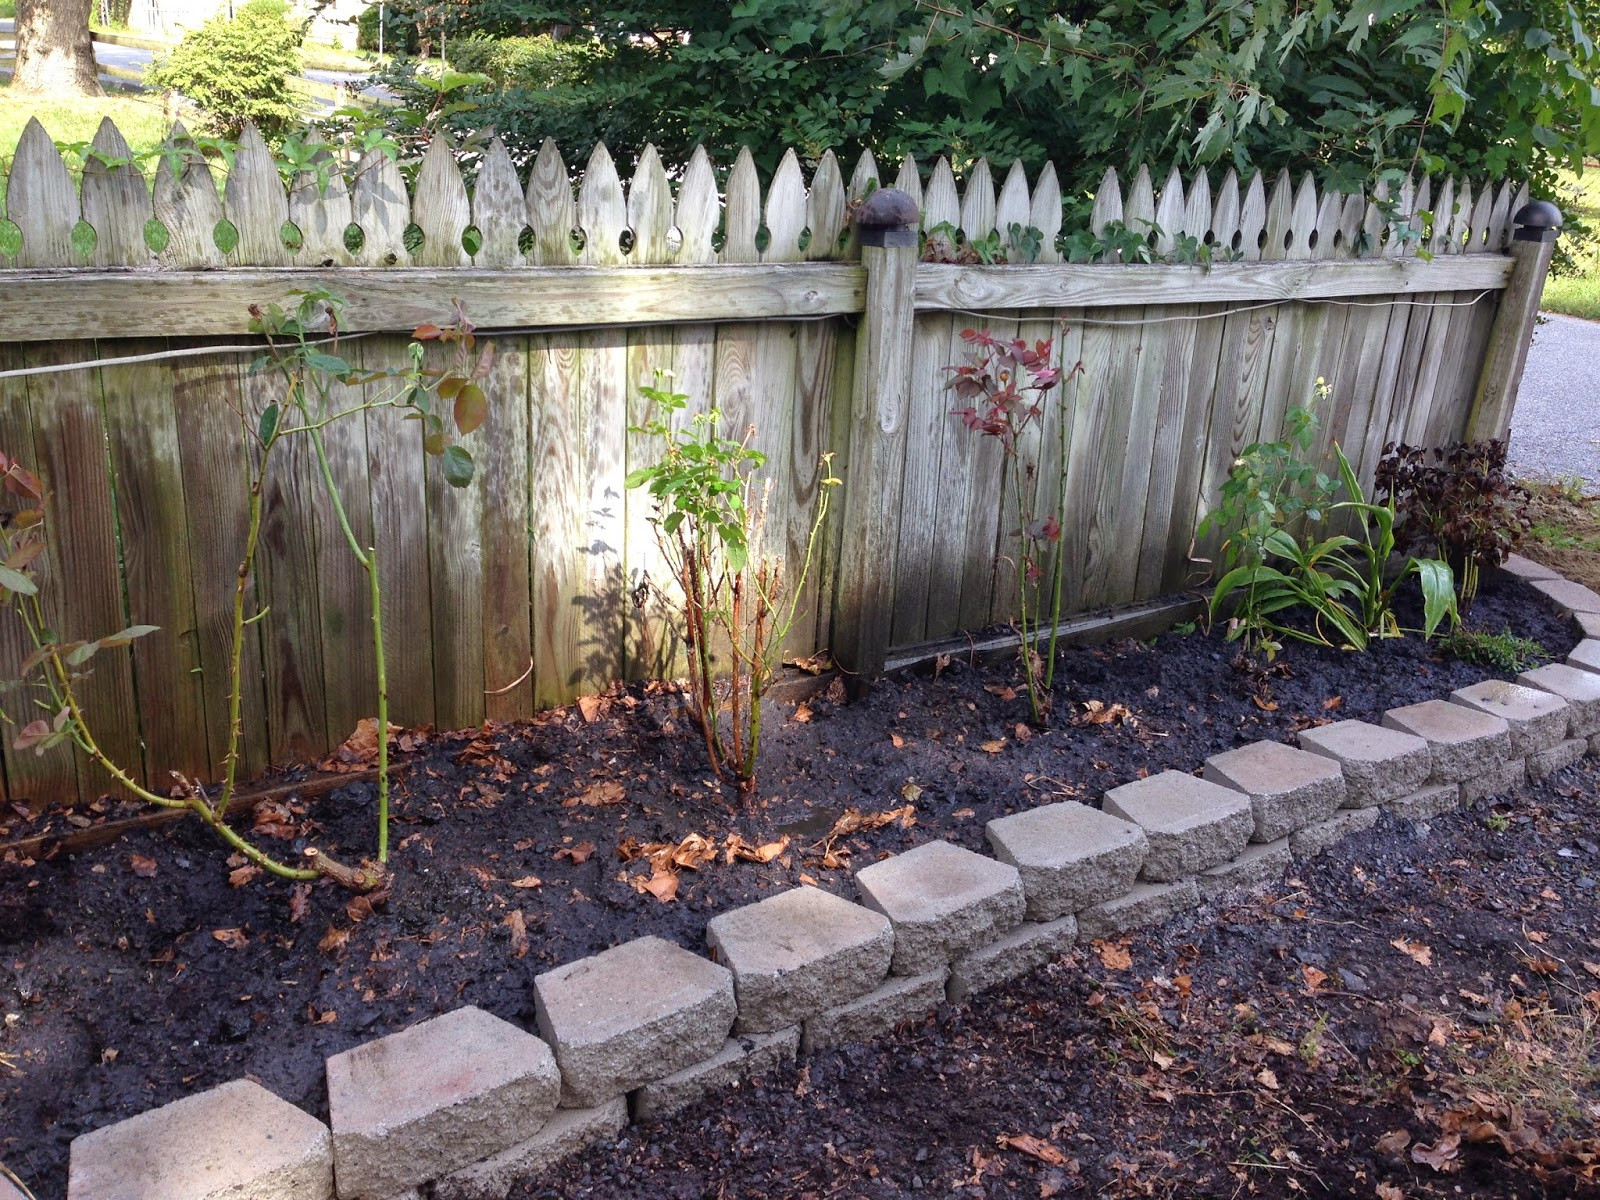 Best ideas about DIY Flower Garden . Save or Pin Pine Whiff House DIY Curb Appeal with a Quick Flower Bed Now.